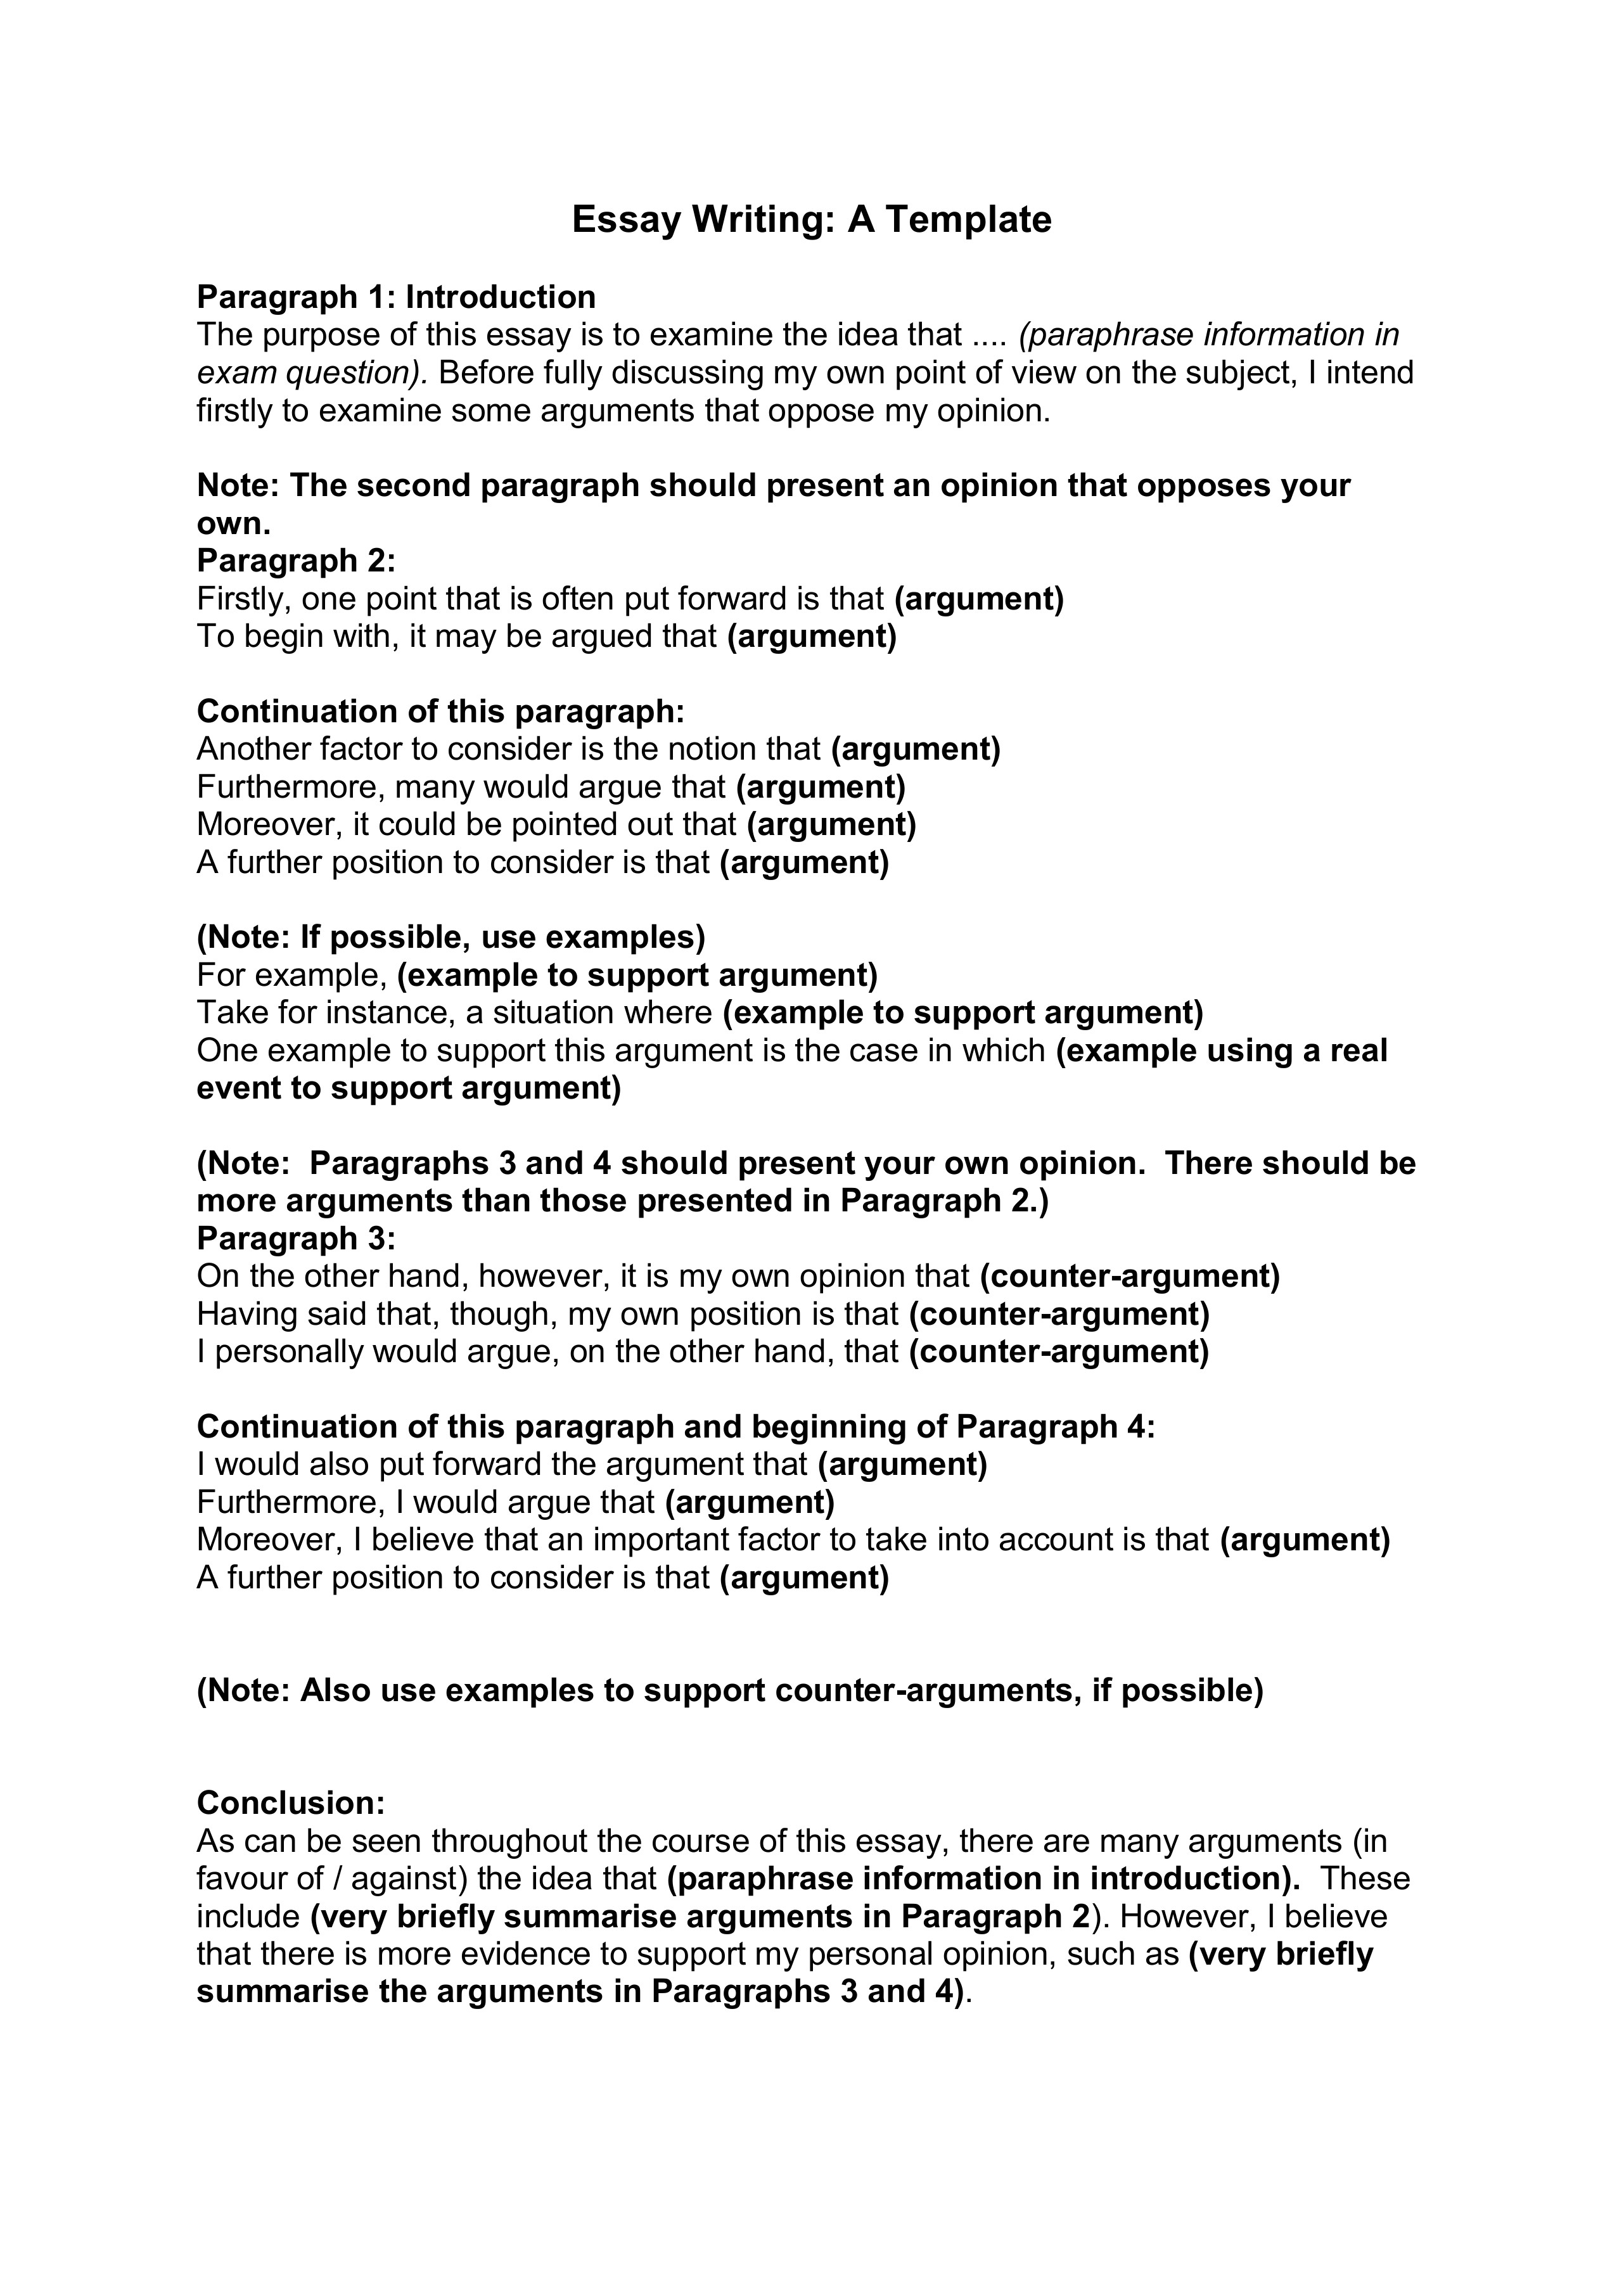 025 Essay Writing Template For Part How Many Sentences Are In Best A 5 Paragraph Short Full